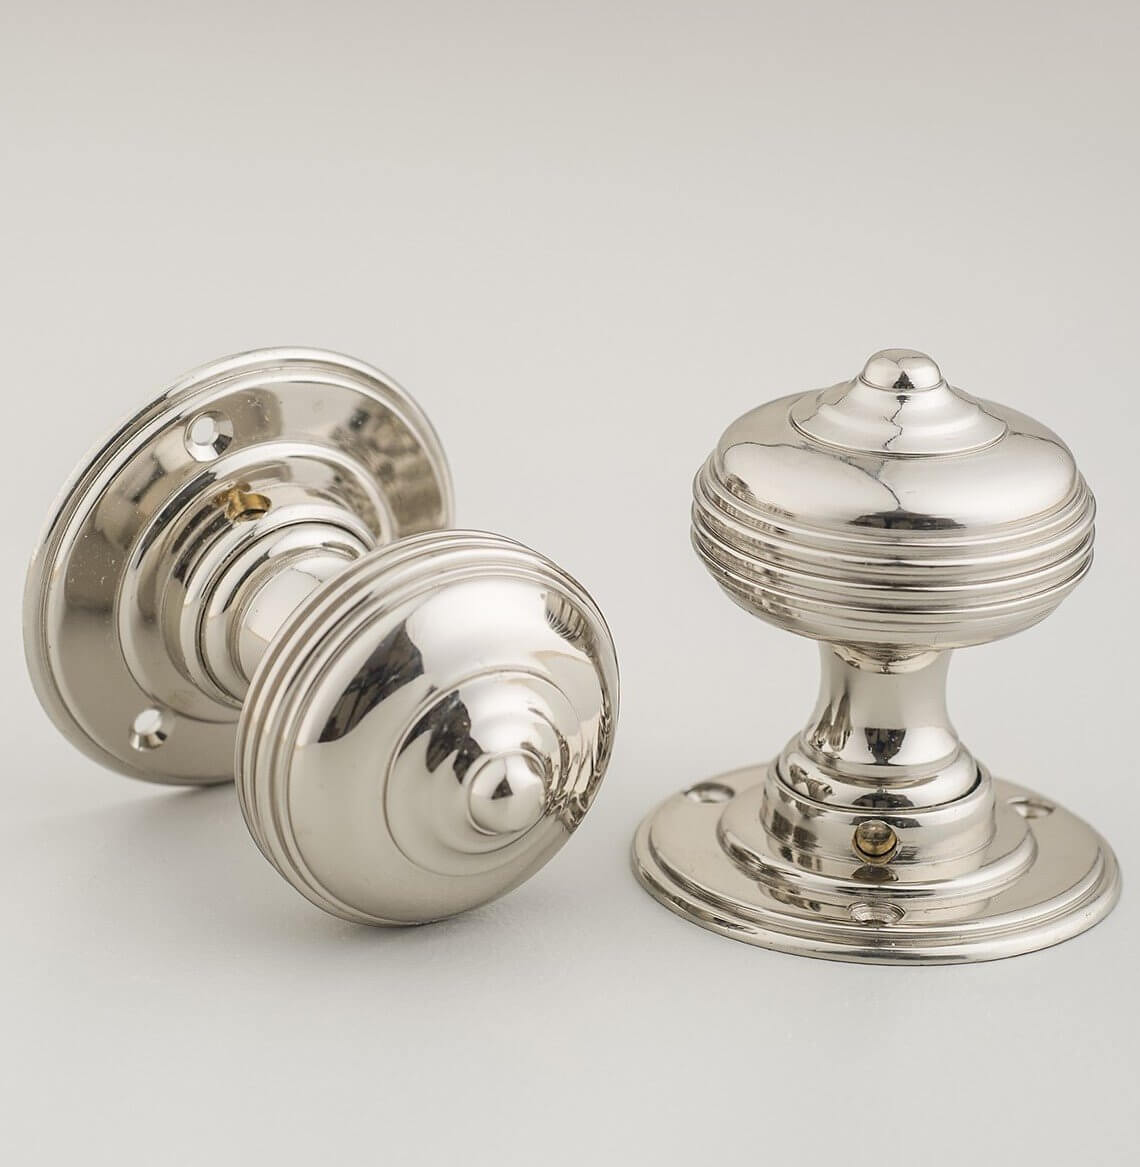 Queen Anne Regency Door Knobs (Pair) - Nickel - ONLY 1 PAIR